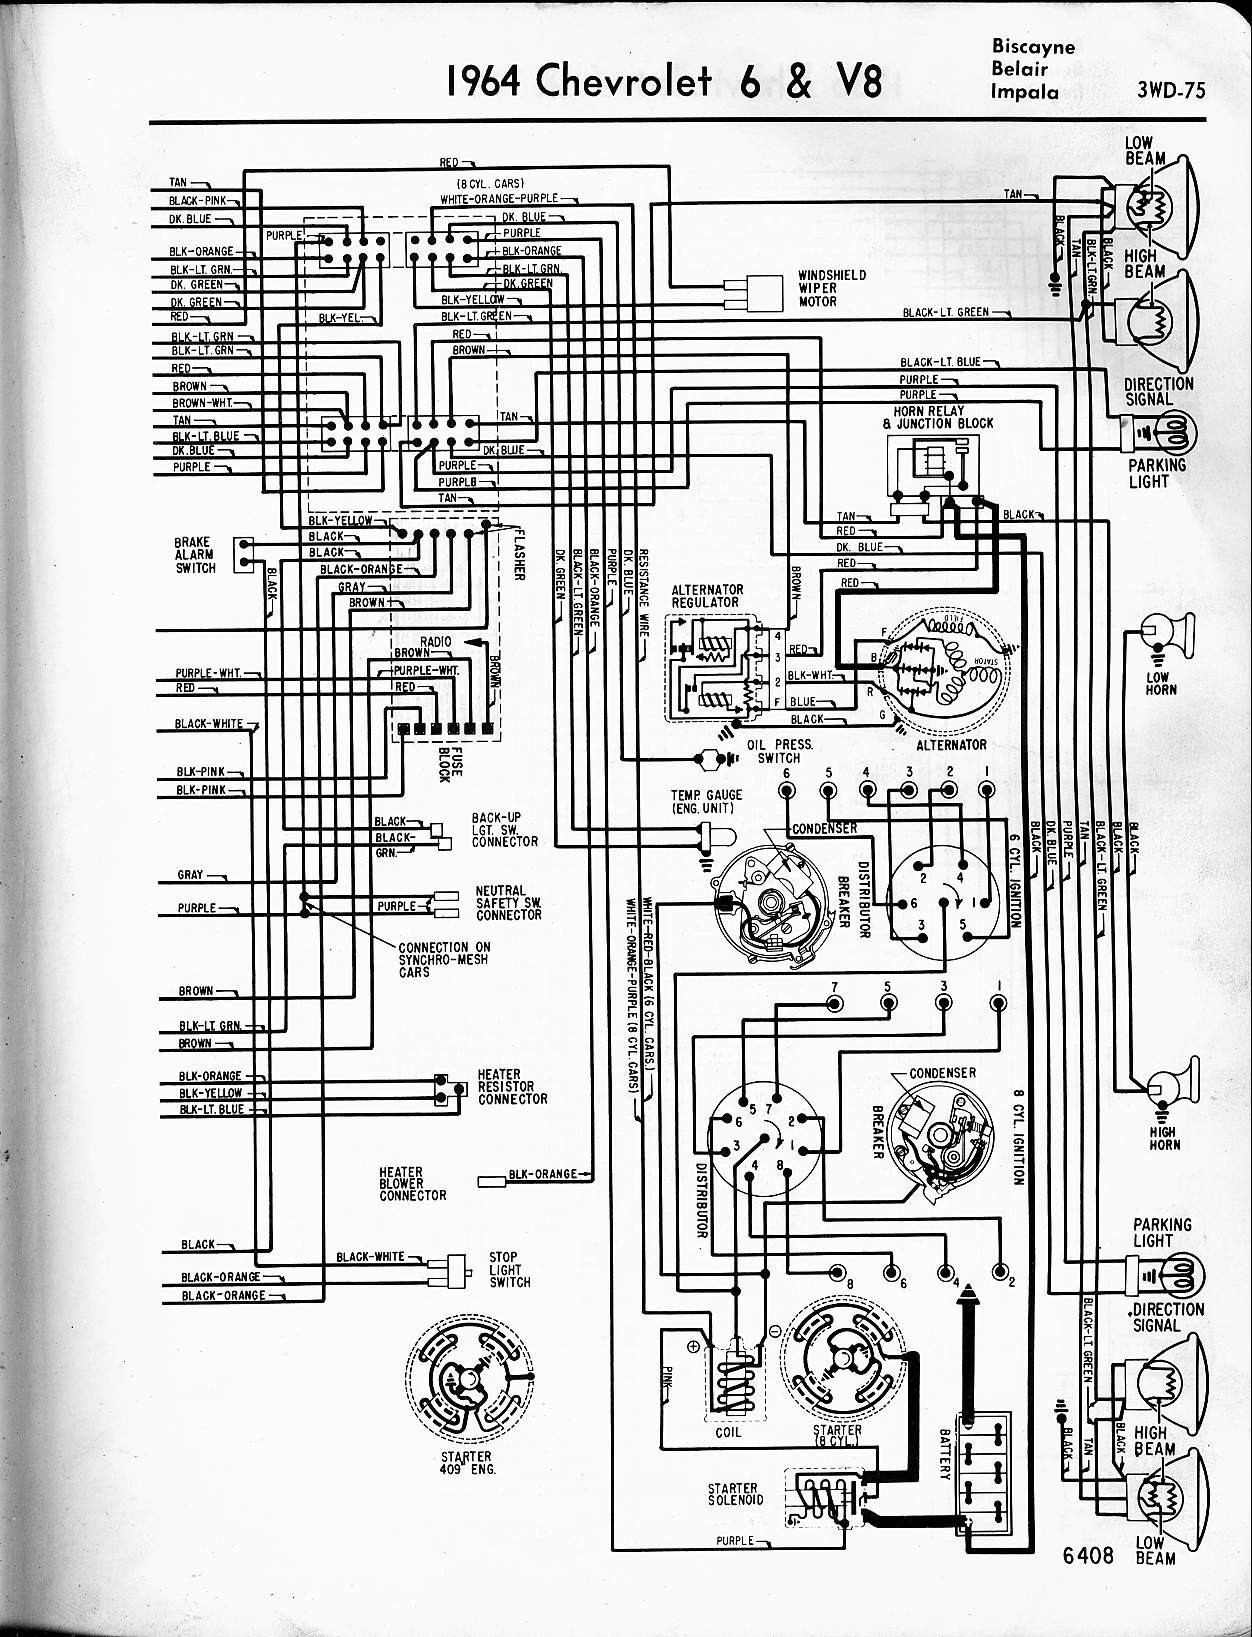 1960 Impala Wiring Diagram With Alternator - Example Electrical ...